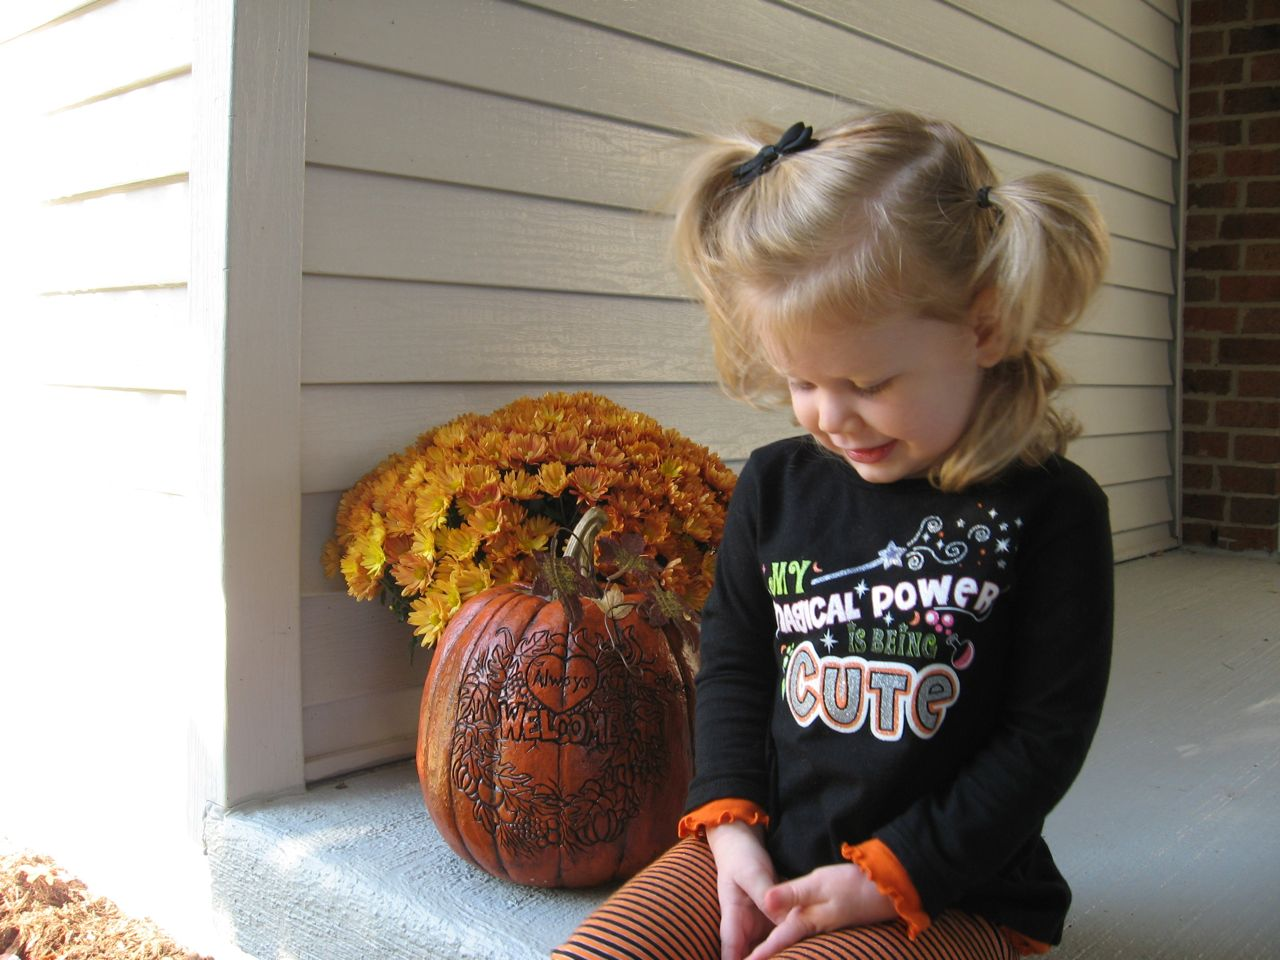 Amelia on the Porch Looking Cute